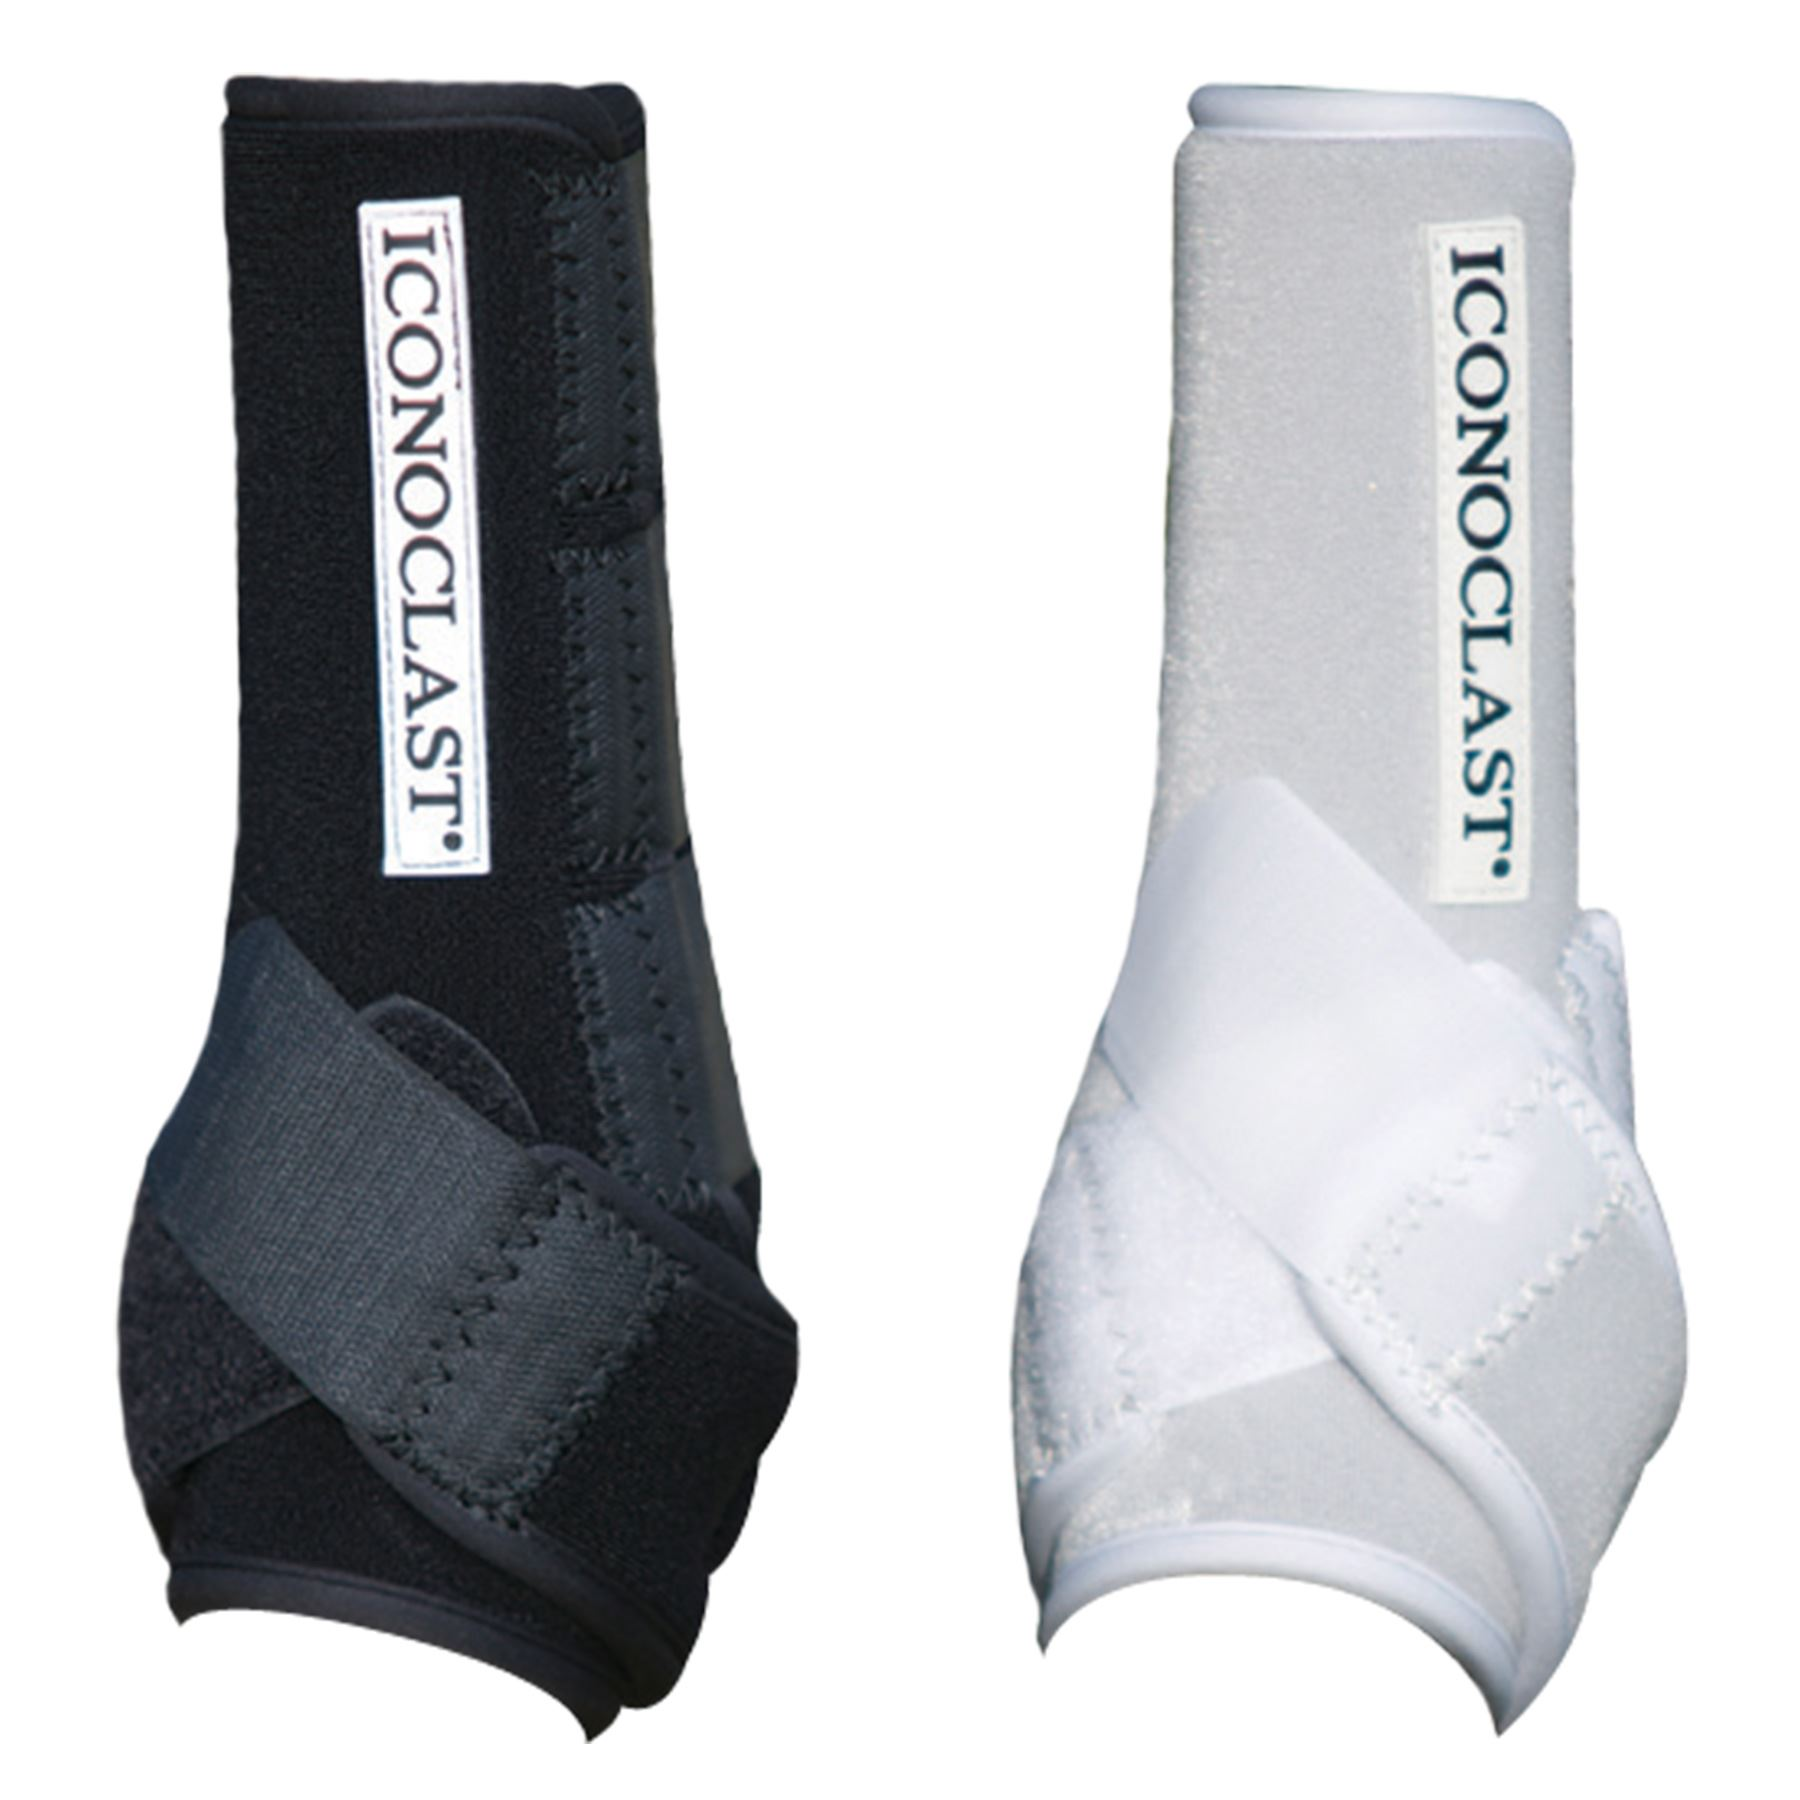 Iconoclast® Front Orthopedic Support Boots